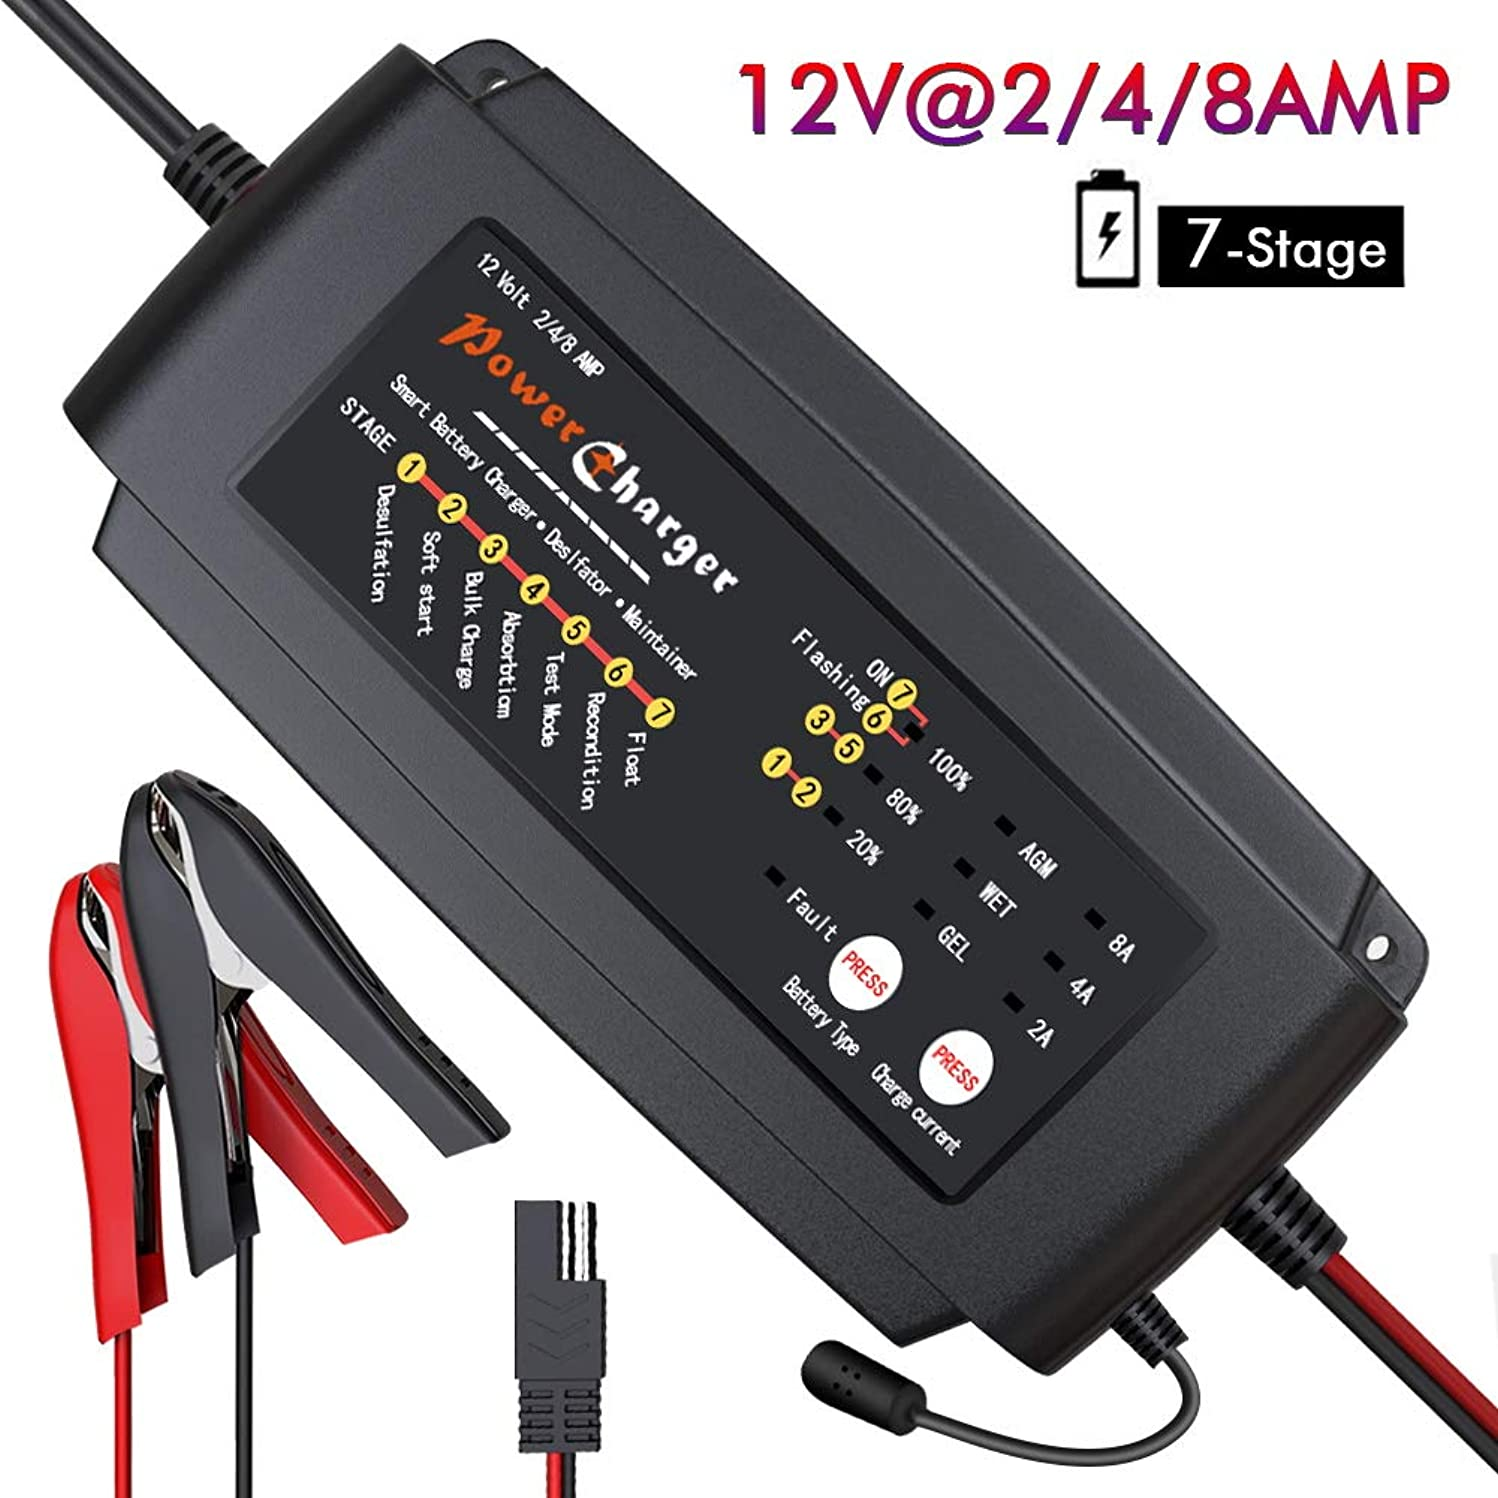 BMK 12V 2/4/8A Smart Battery Charger Portable Trickle Battery Maintainer with 7-Stage Fast Charging IP64 Waterproof Trickle Charger for Car Boat Lawn Mower Marine Sealed Lead Acid Batteries